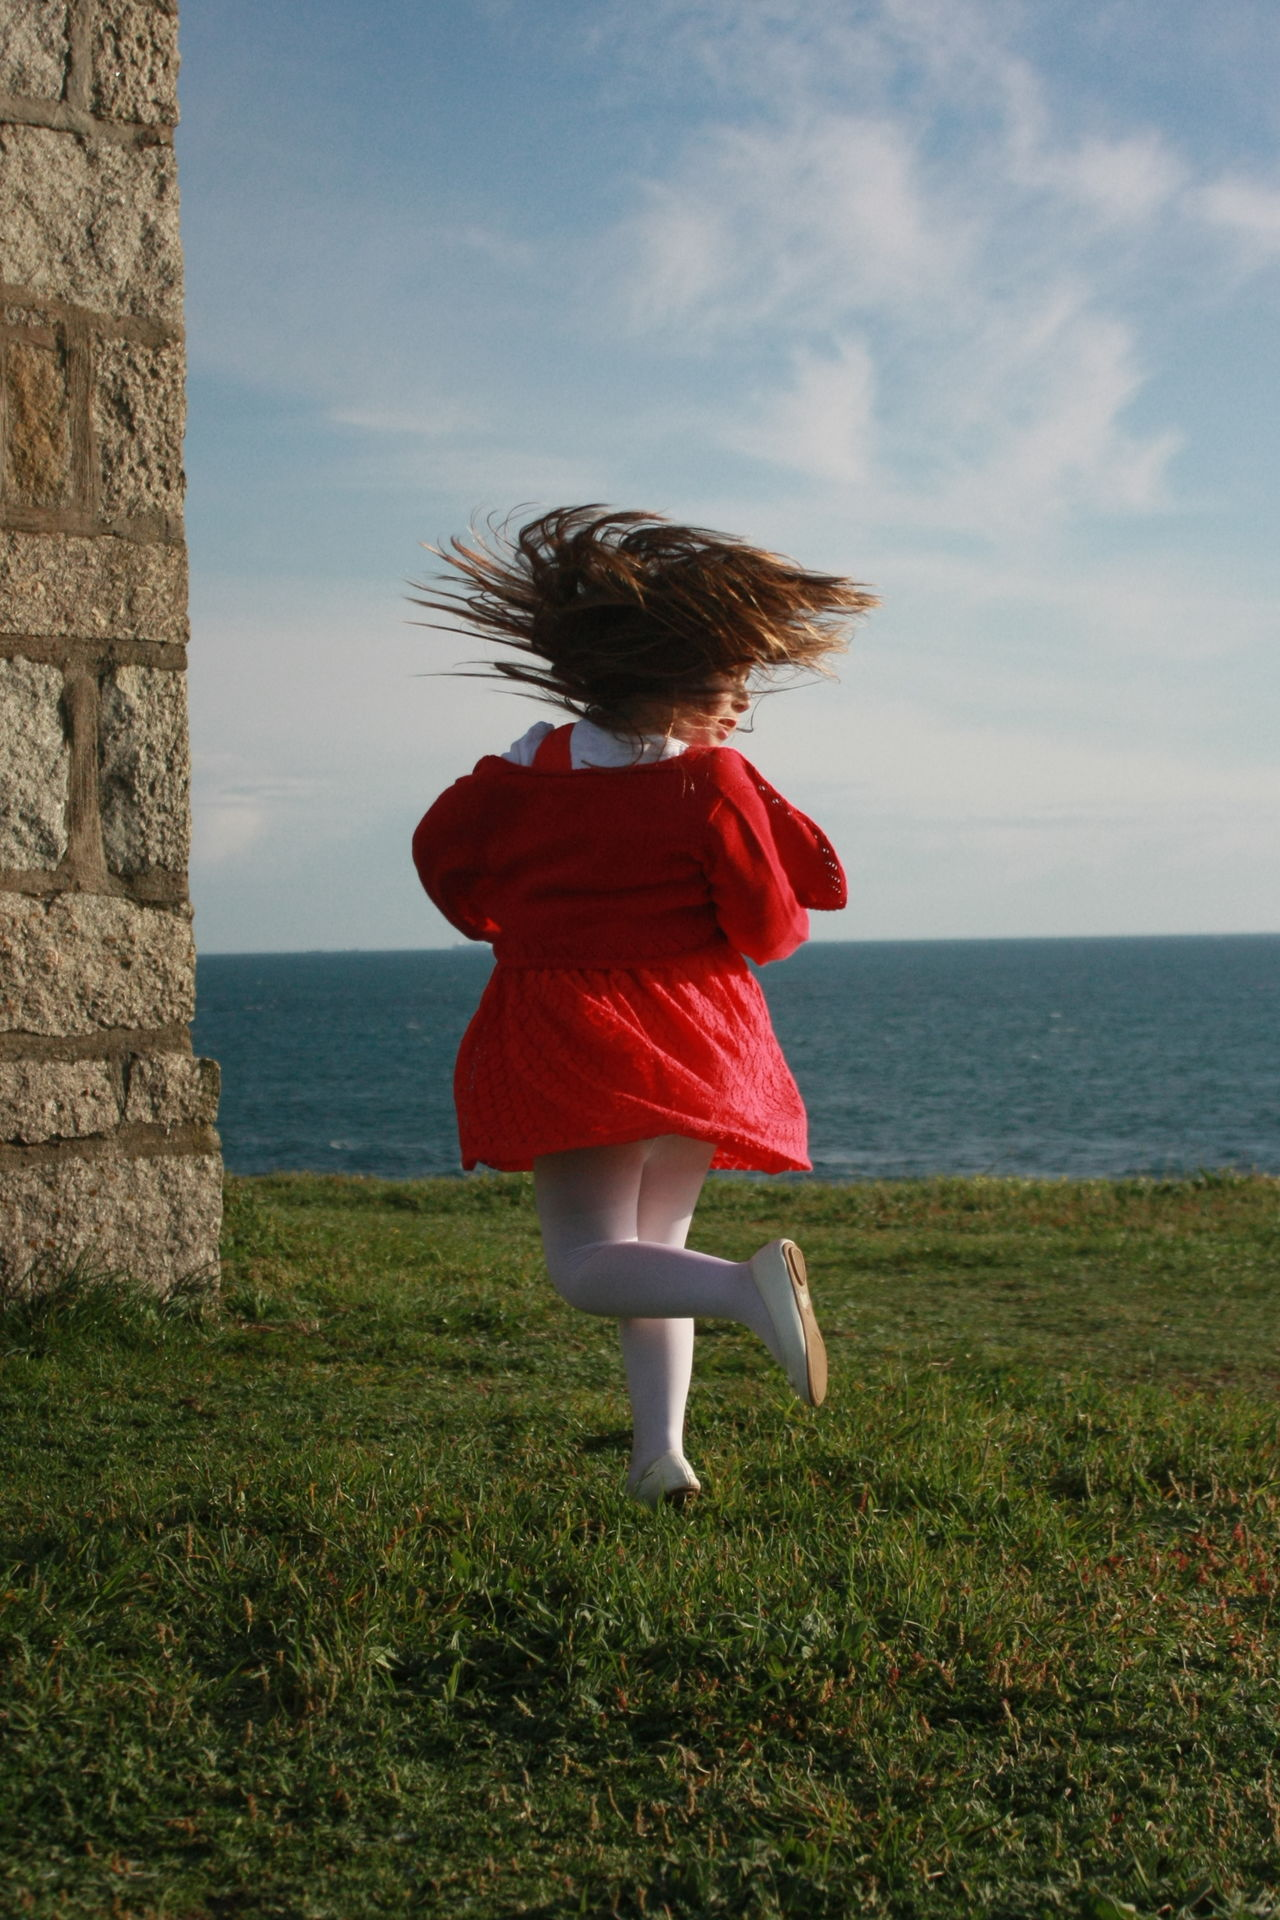 Adult Beauty In Nature Children Children Photography Cloud - Sky Day Full Length Grass Nature One Person Outdoors People Rear View Red Dress Sea Sky Water Women Dramatic Angles